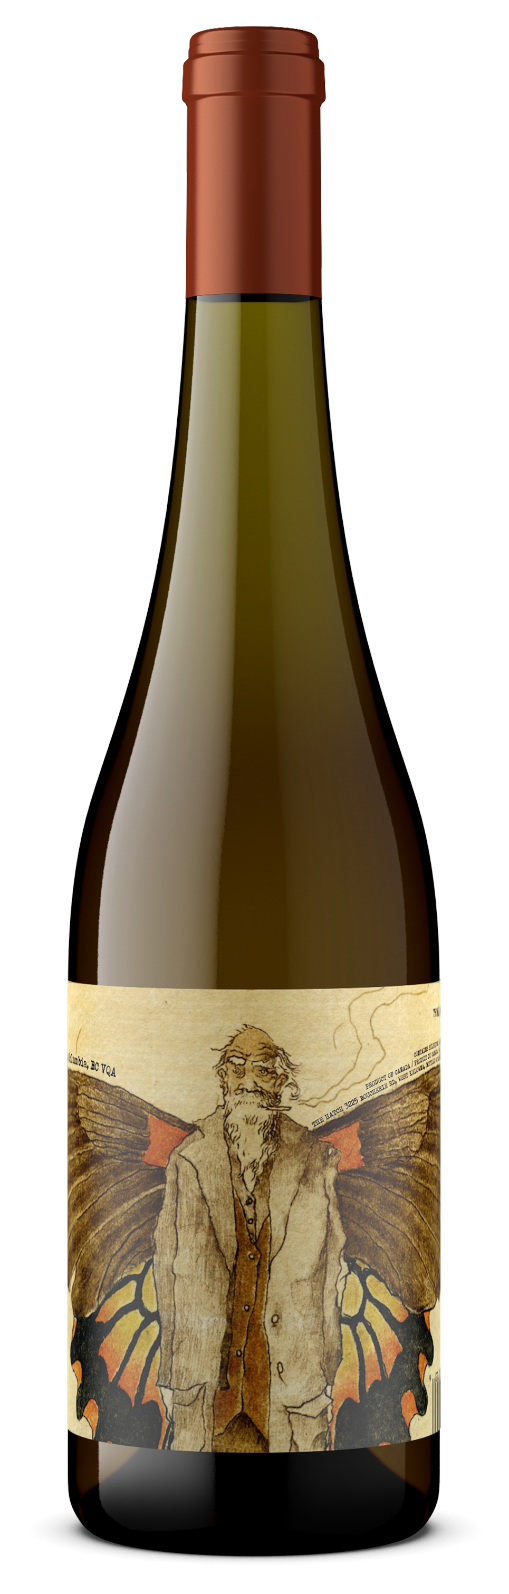 the hatch 2019 'hobo' Müller-Thurgau